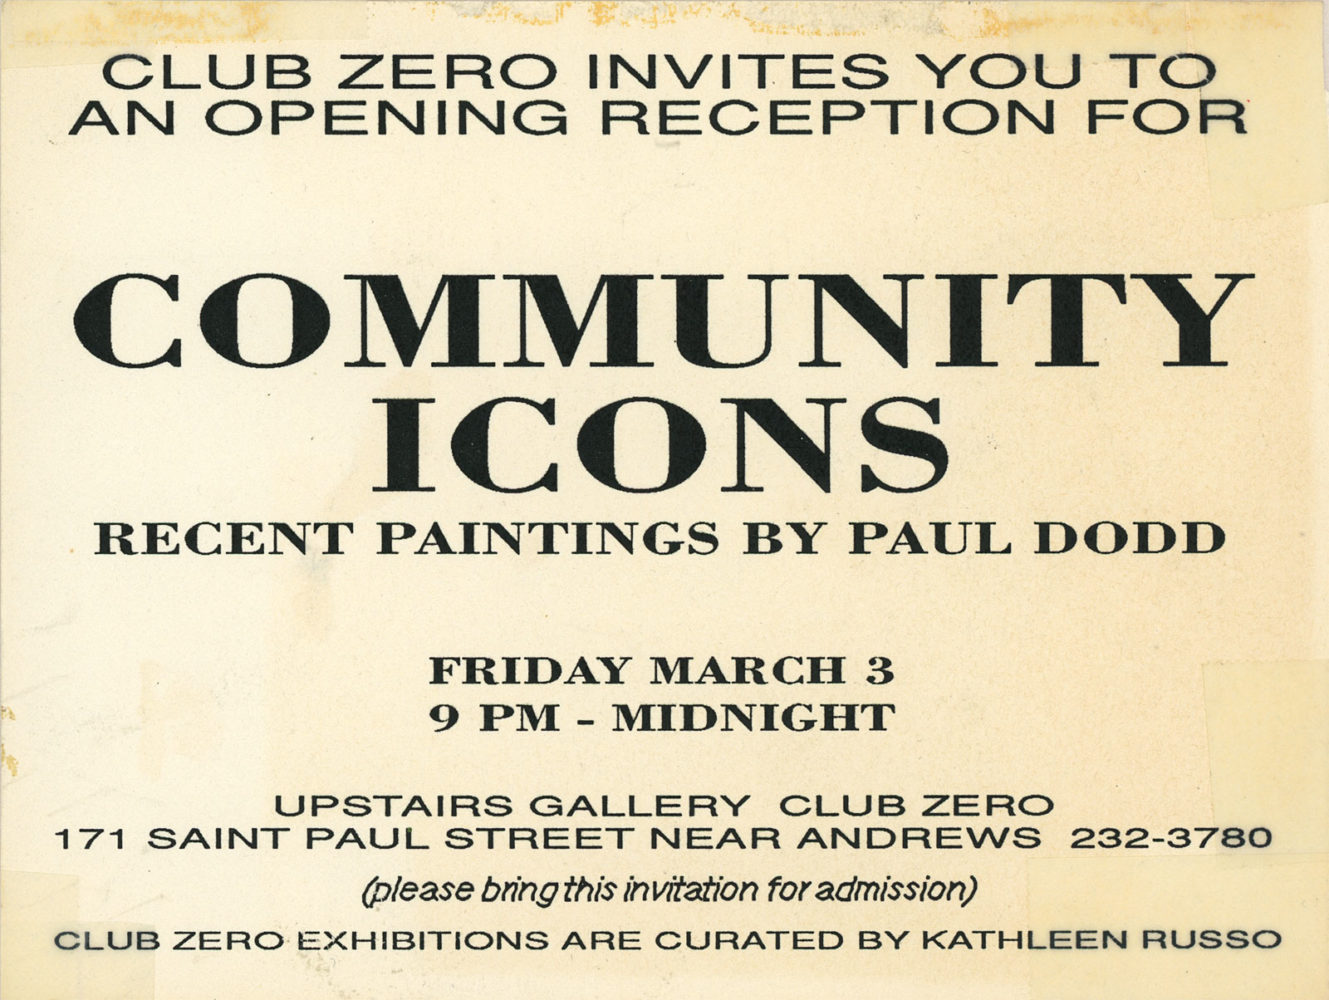 Community Icons iInvitation to show of Paul Dodd paintings at Club Zero in Rochester, New York 1989